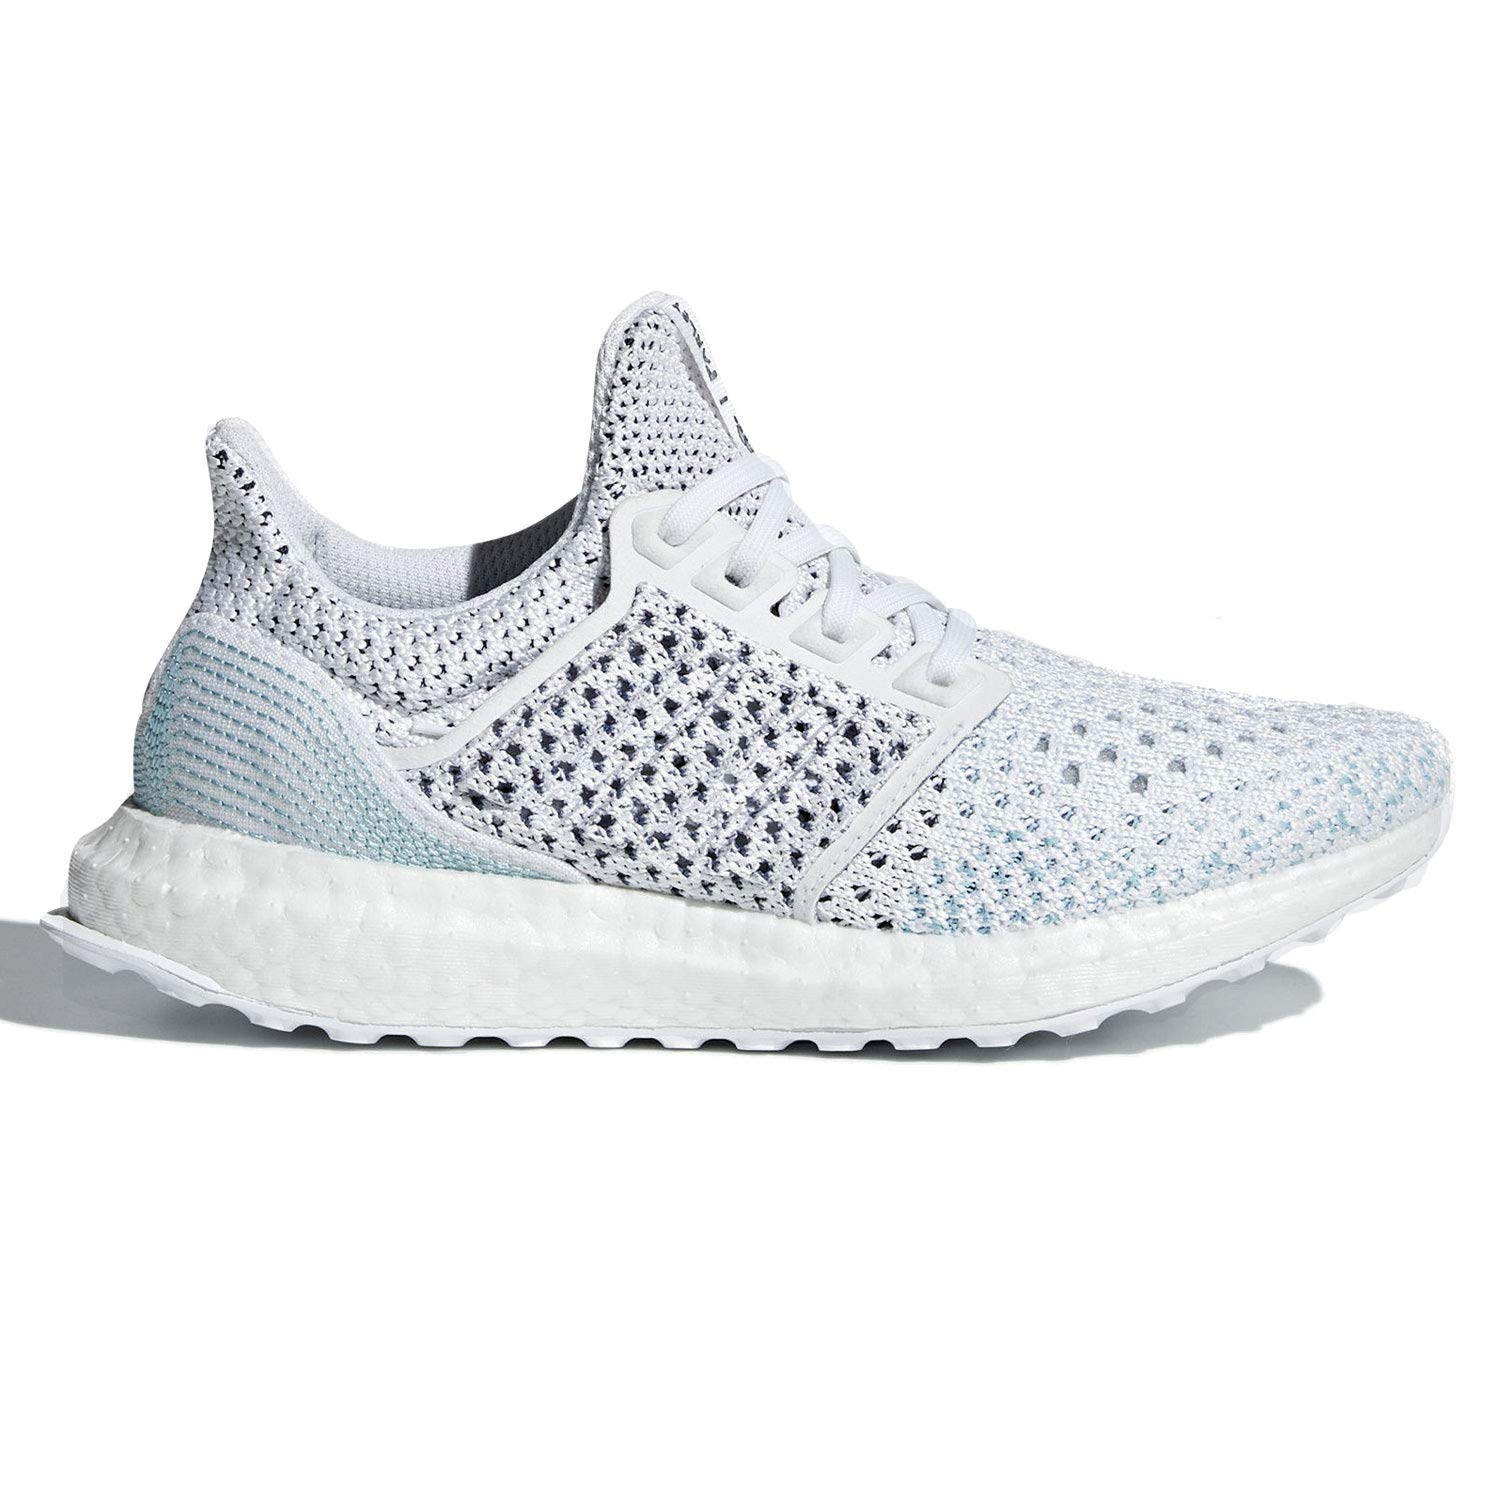 reputable site e6c23 a1bd2 Amazon.com | adidas Kids' Ultraboost | Running